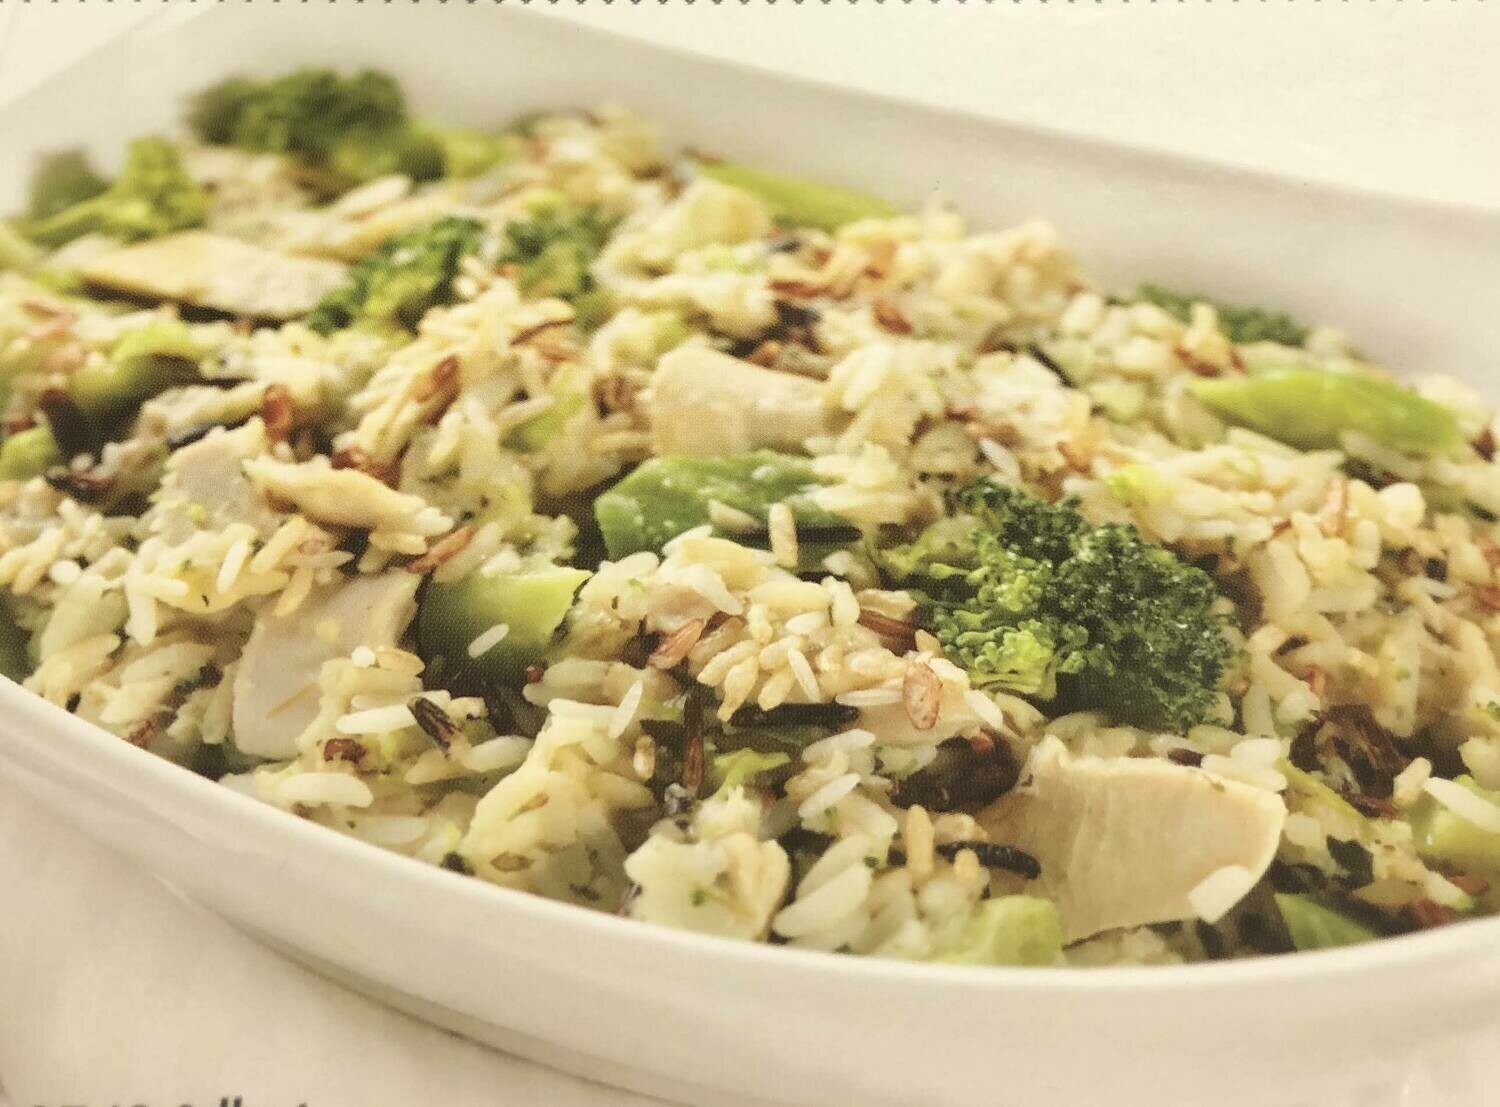 Ready to BakeChicken Broccoli and Wild Rice Casserole